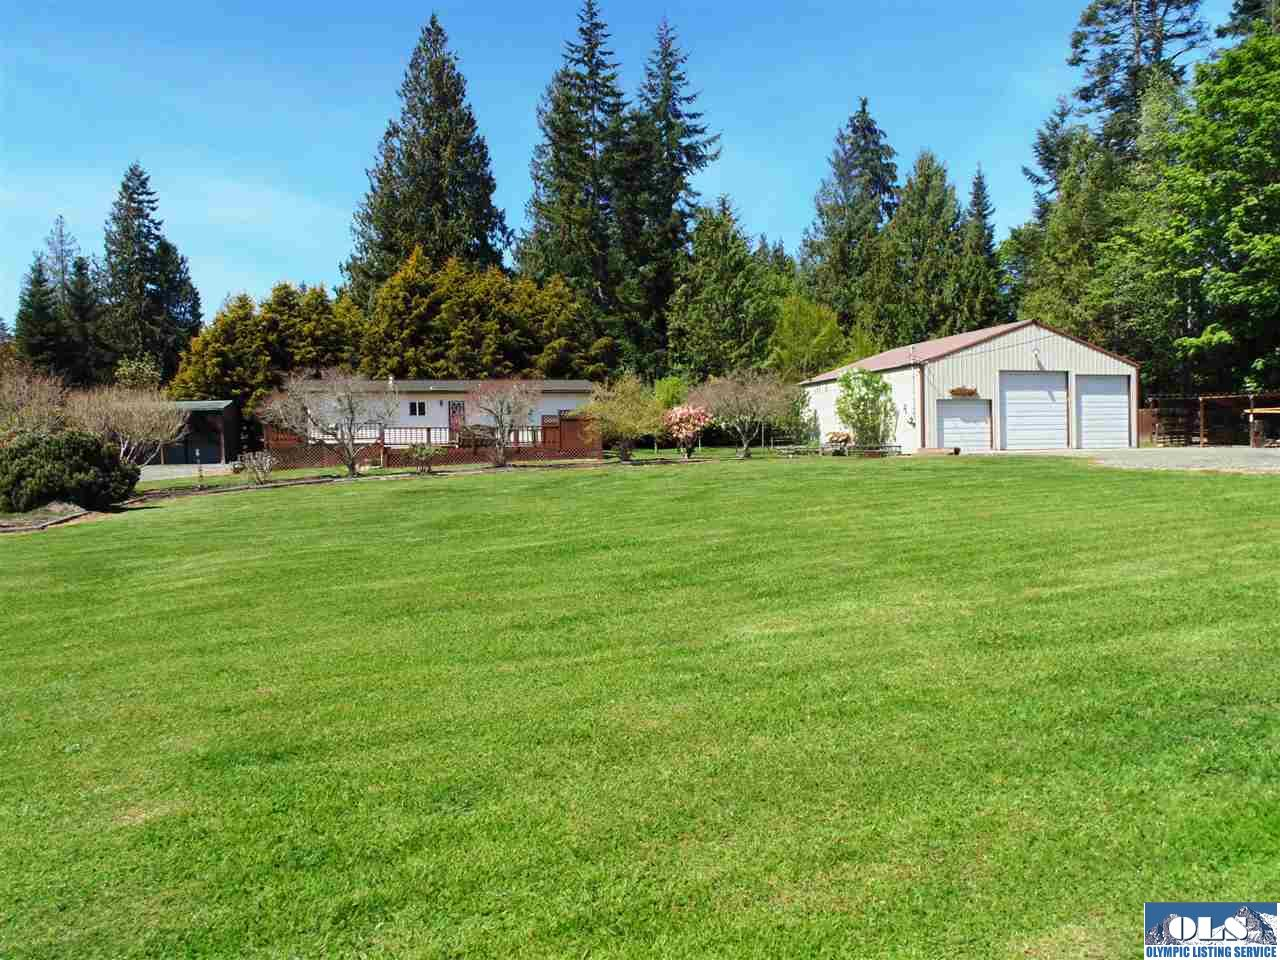 Home Toppers Real Estate Sequim Washington